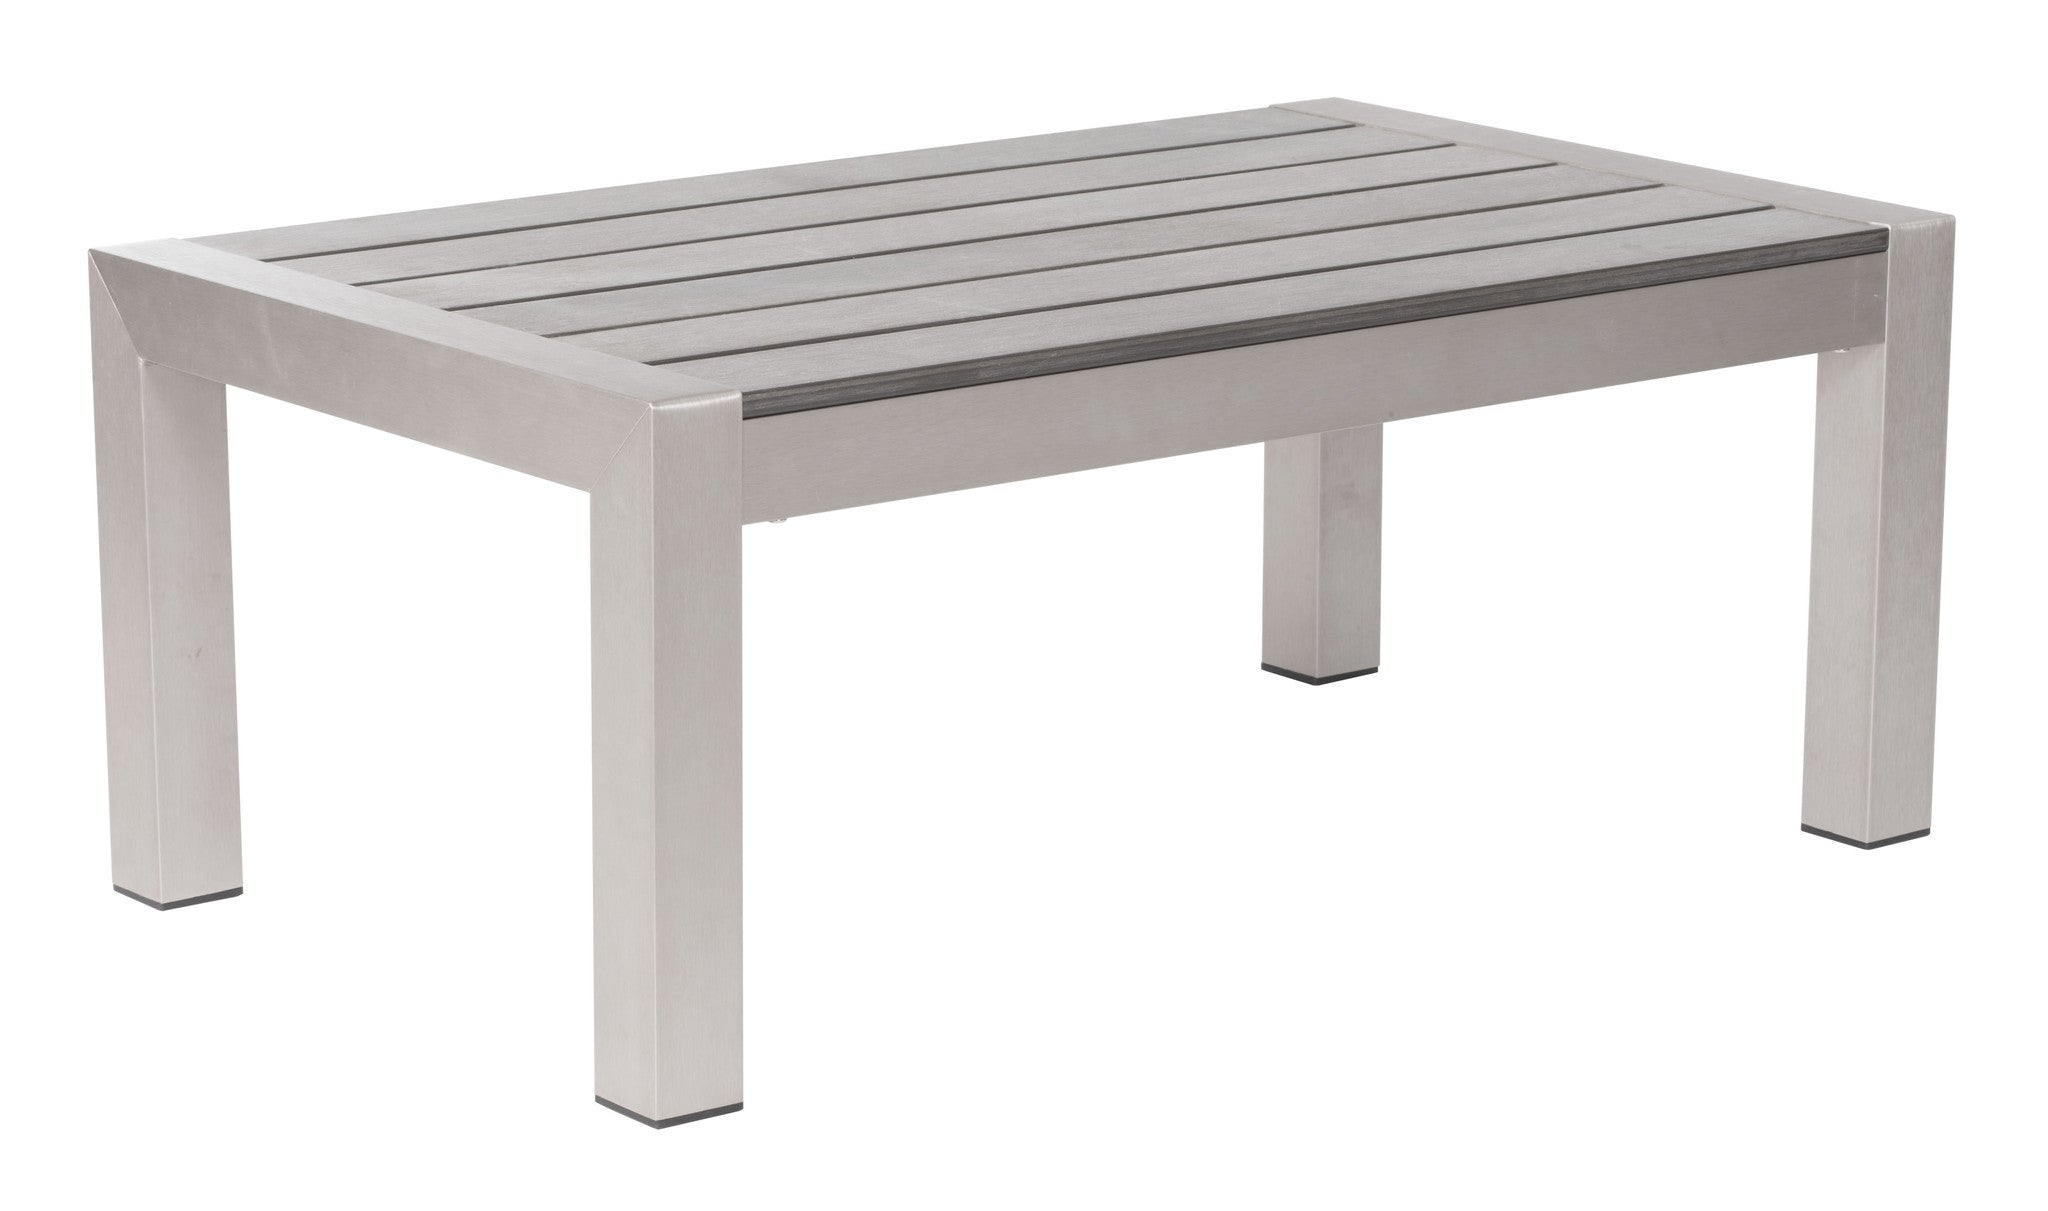 Cosmopolitan Patio Coffee Table in Brushed Aluminum